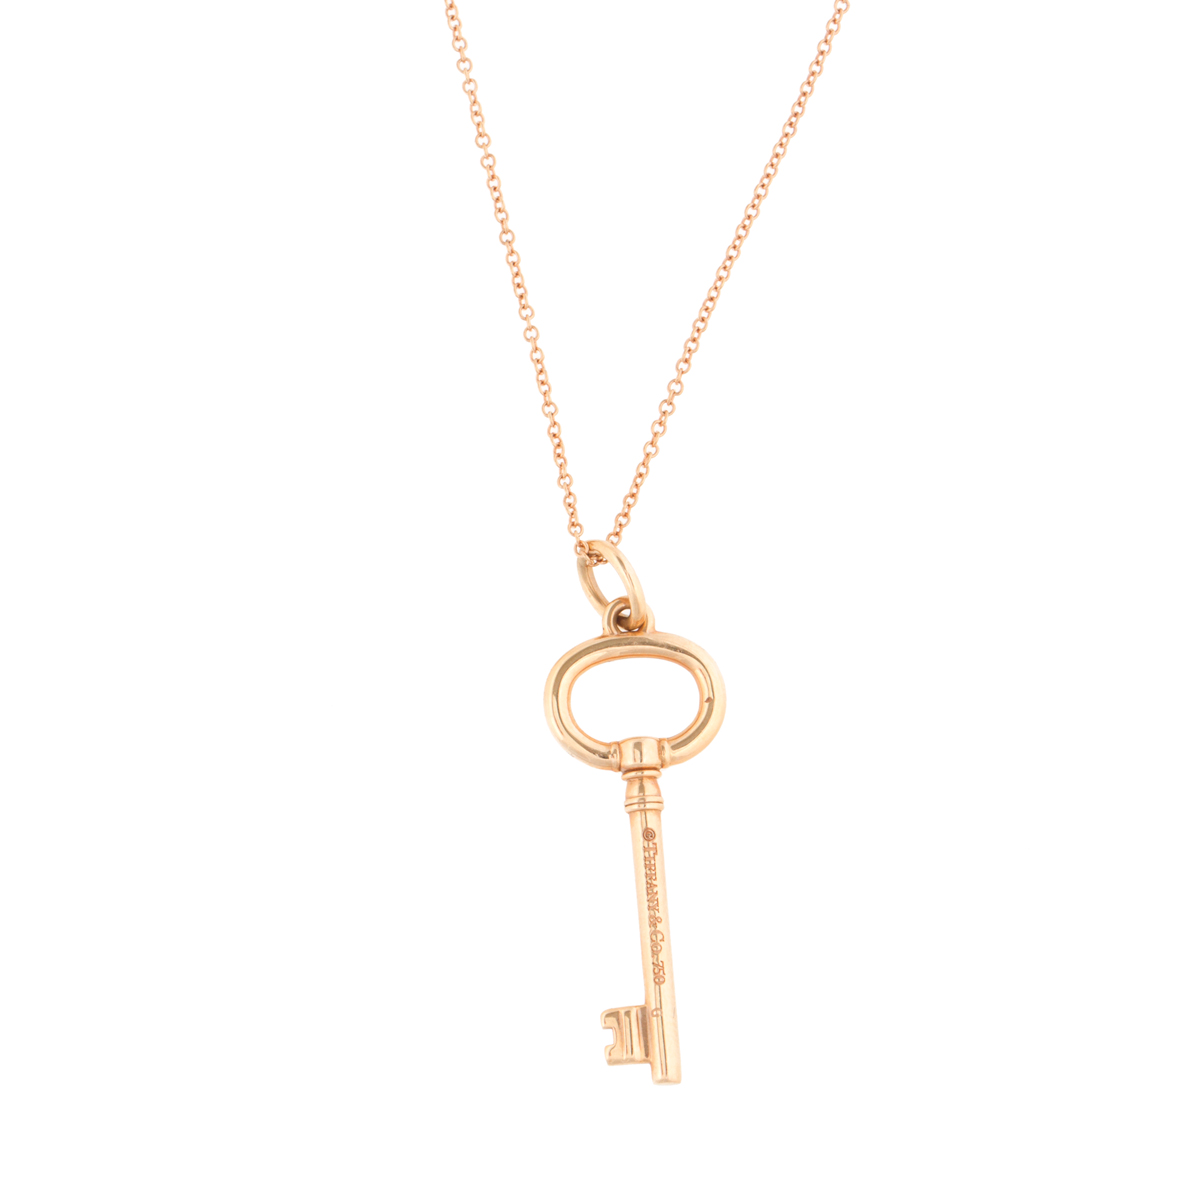 Tiffany Co 18k Rose Gold Key Necklace Tiffany Co Buy At Truefacet